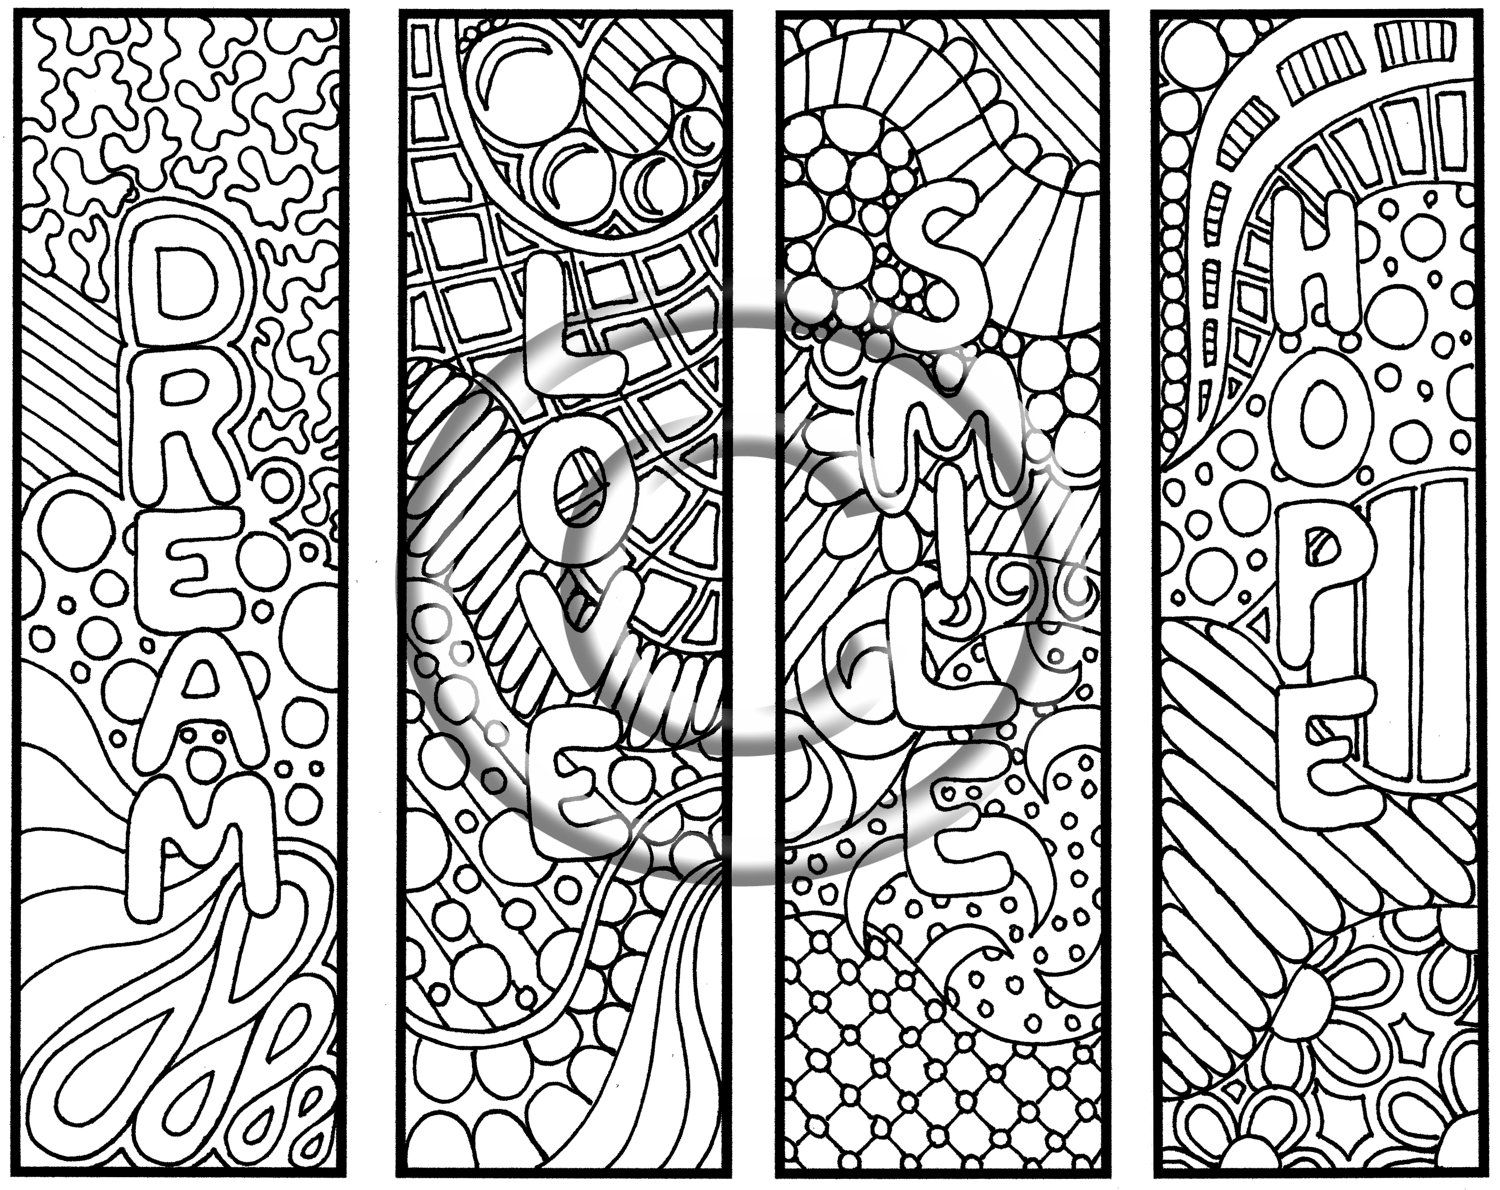 Uncategorized Crazy Designs To Color crazy designs coloring pages doodle bookmarks pages